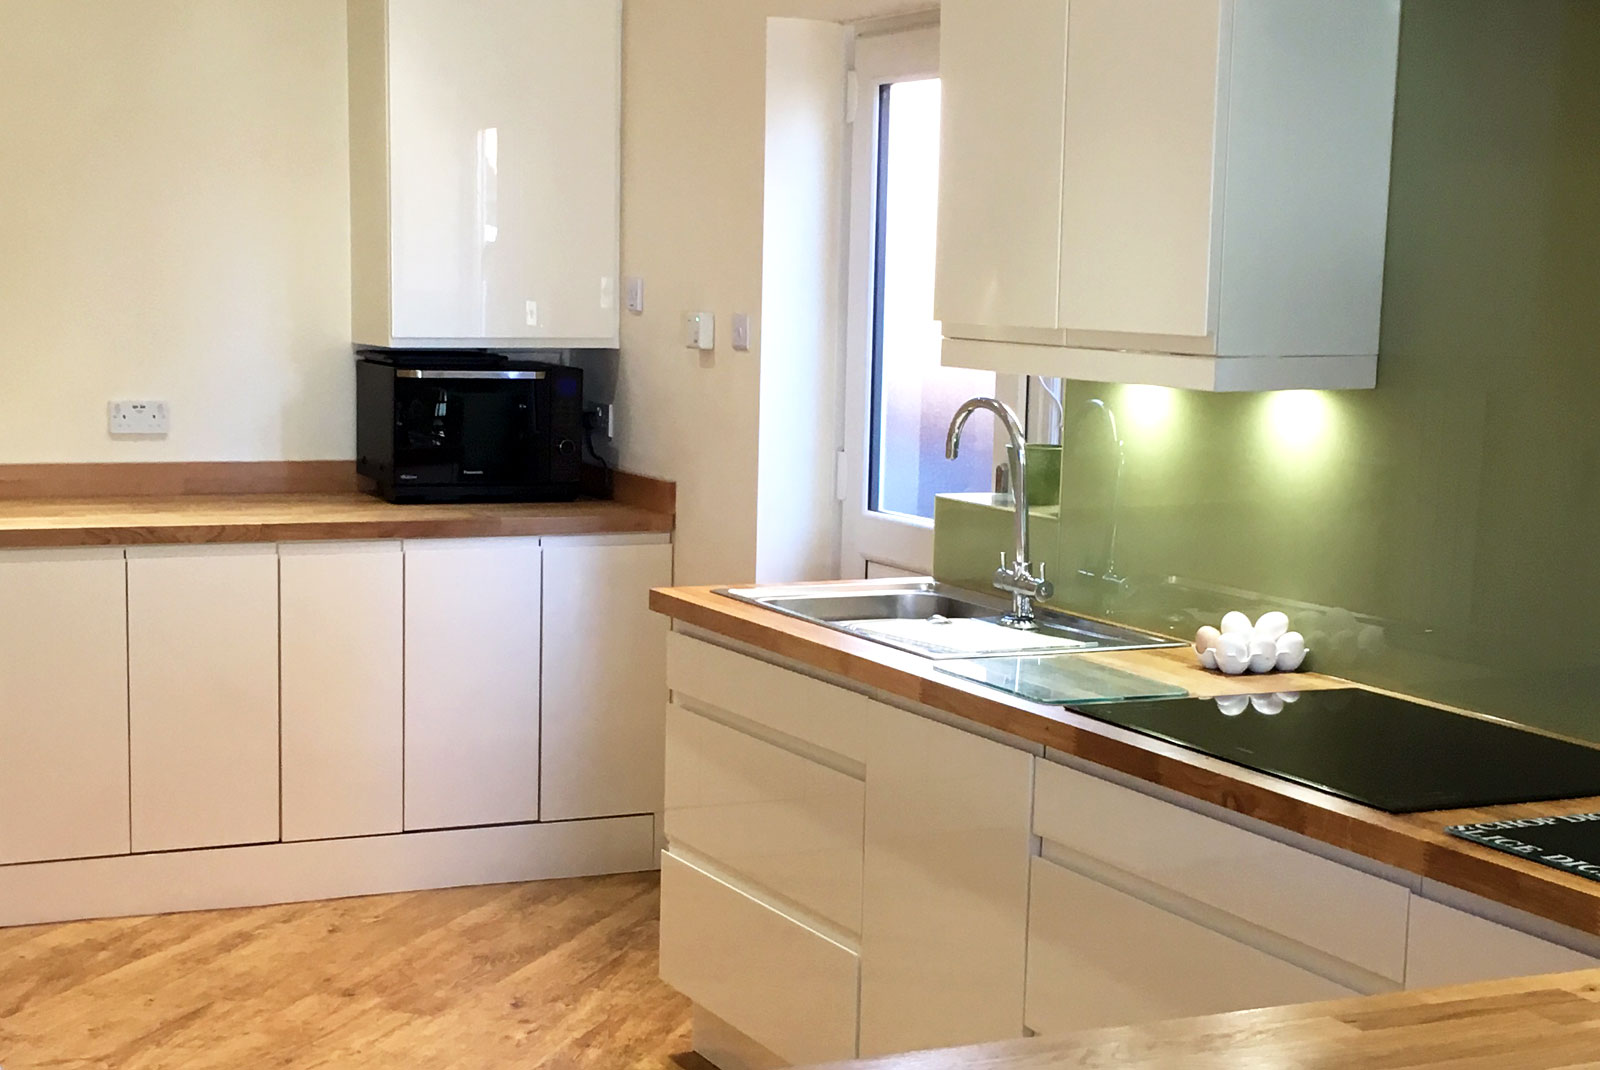 Stephen from Amington Top quality kitchen and very